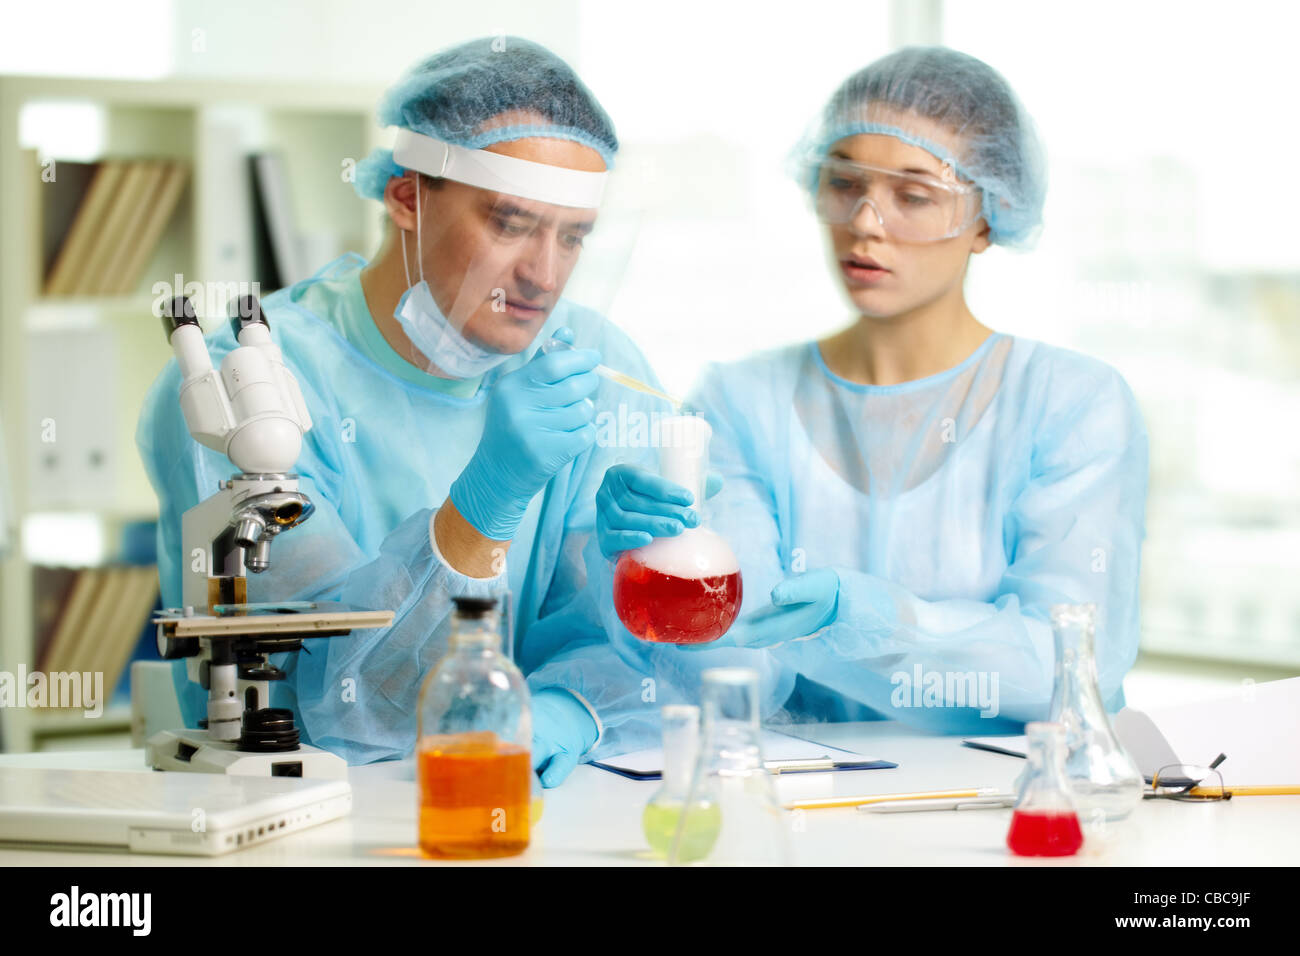 Laboratory worker is about to inject fluid into smoky chemical substance during experiment - Stock Image